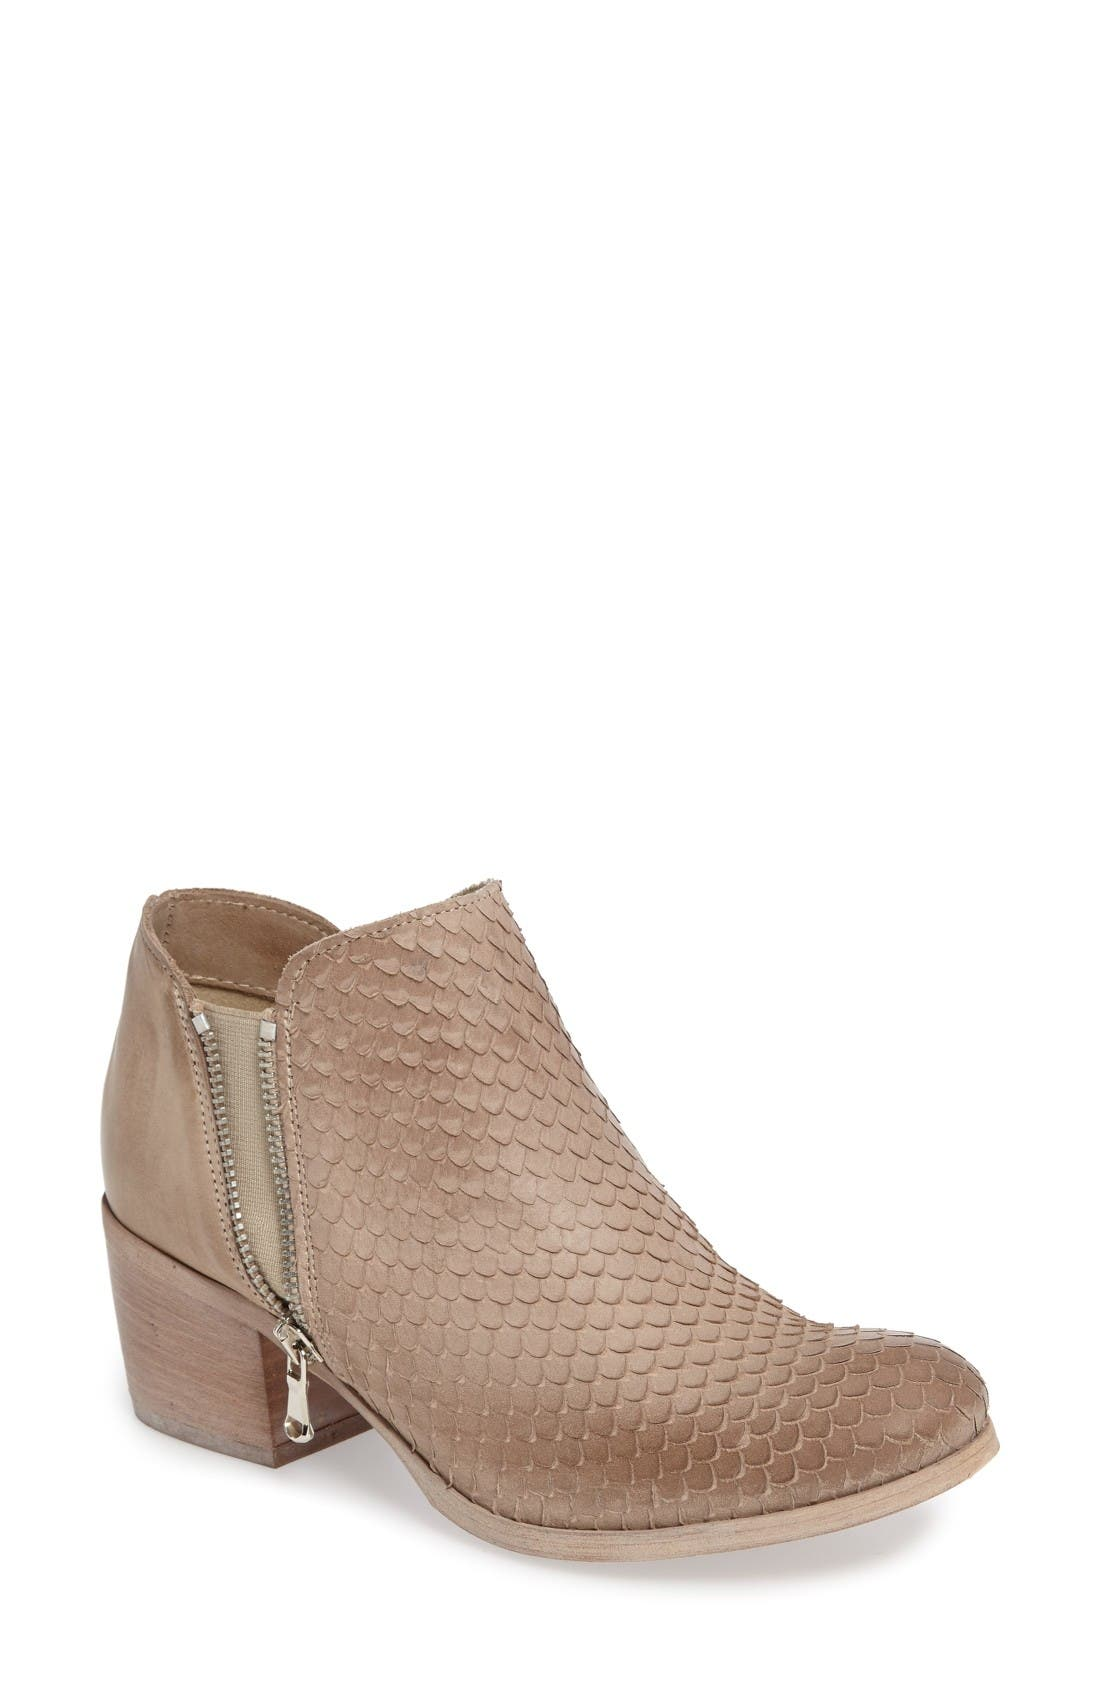 Cher Snake Embossed Bootie,                             Main thumbnail 1, color,                             Light Tan Printed Leather